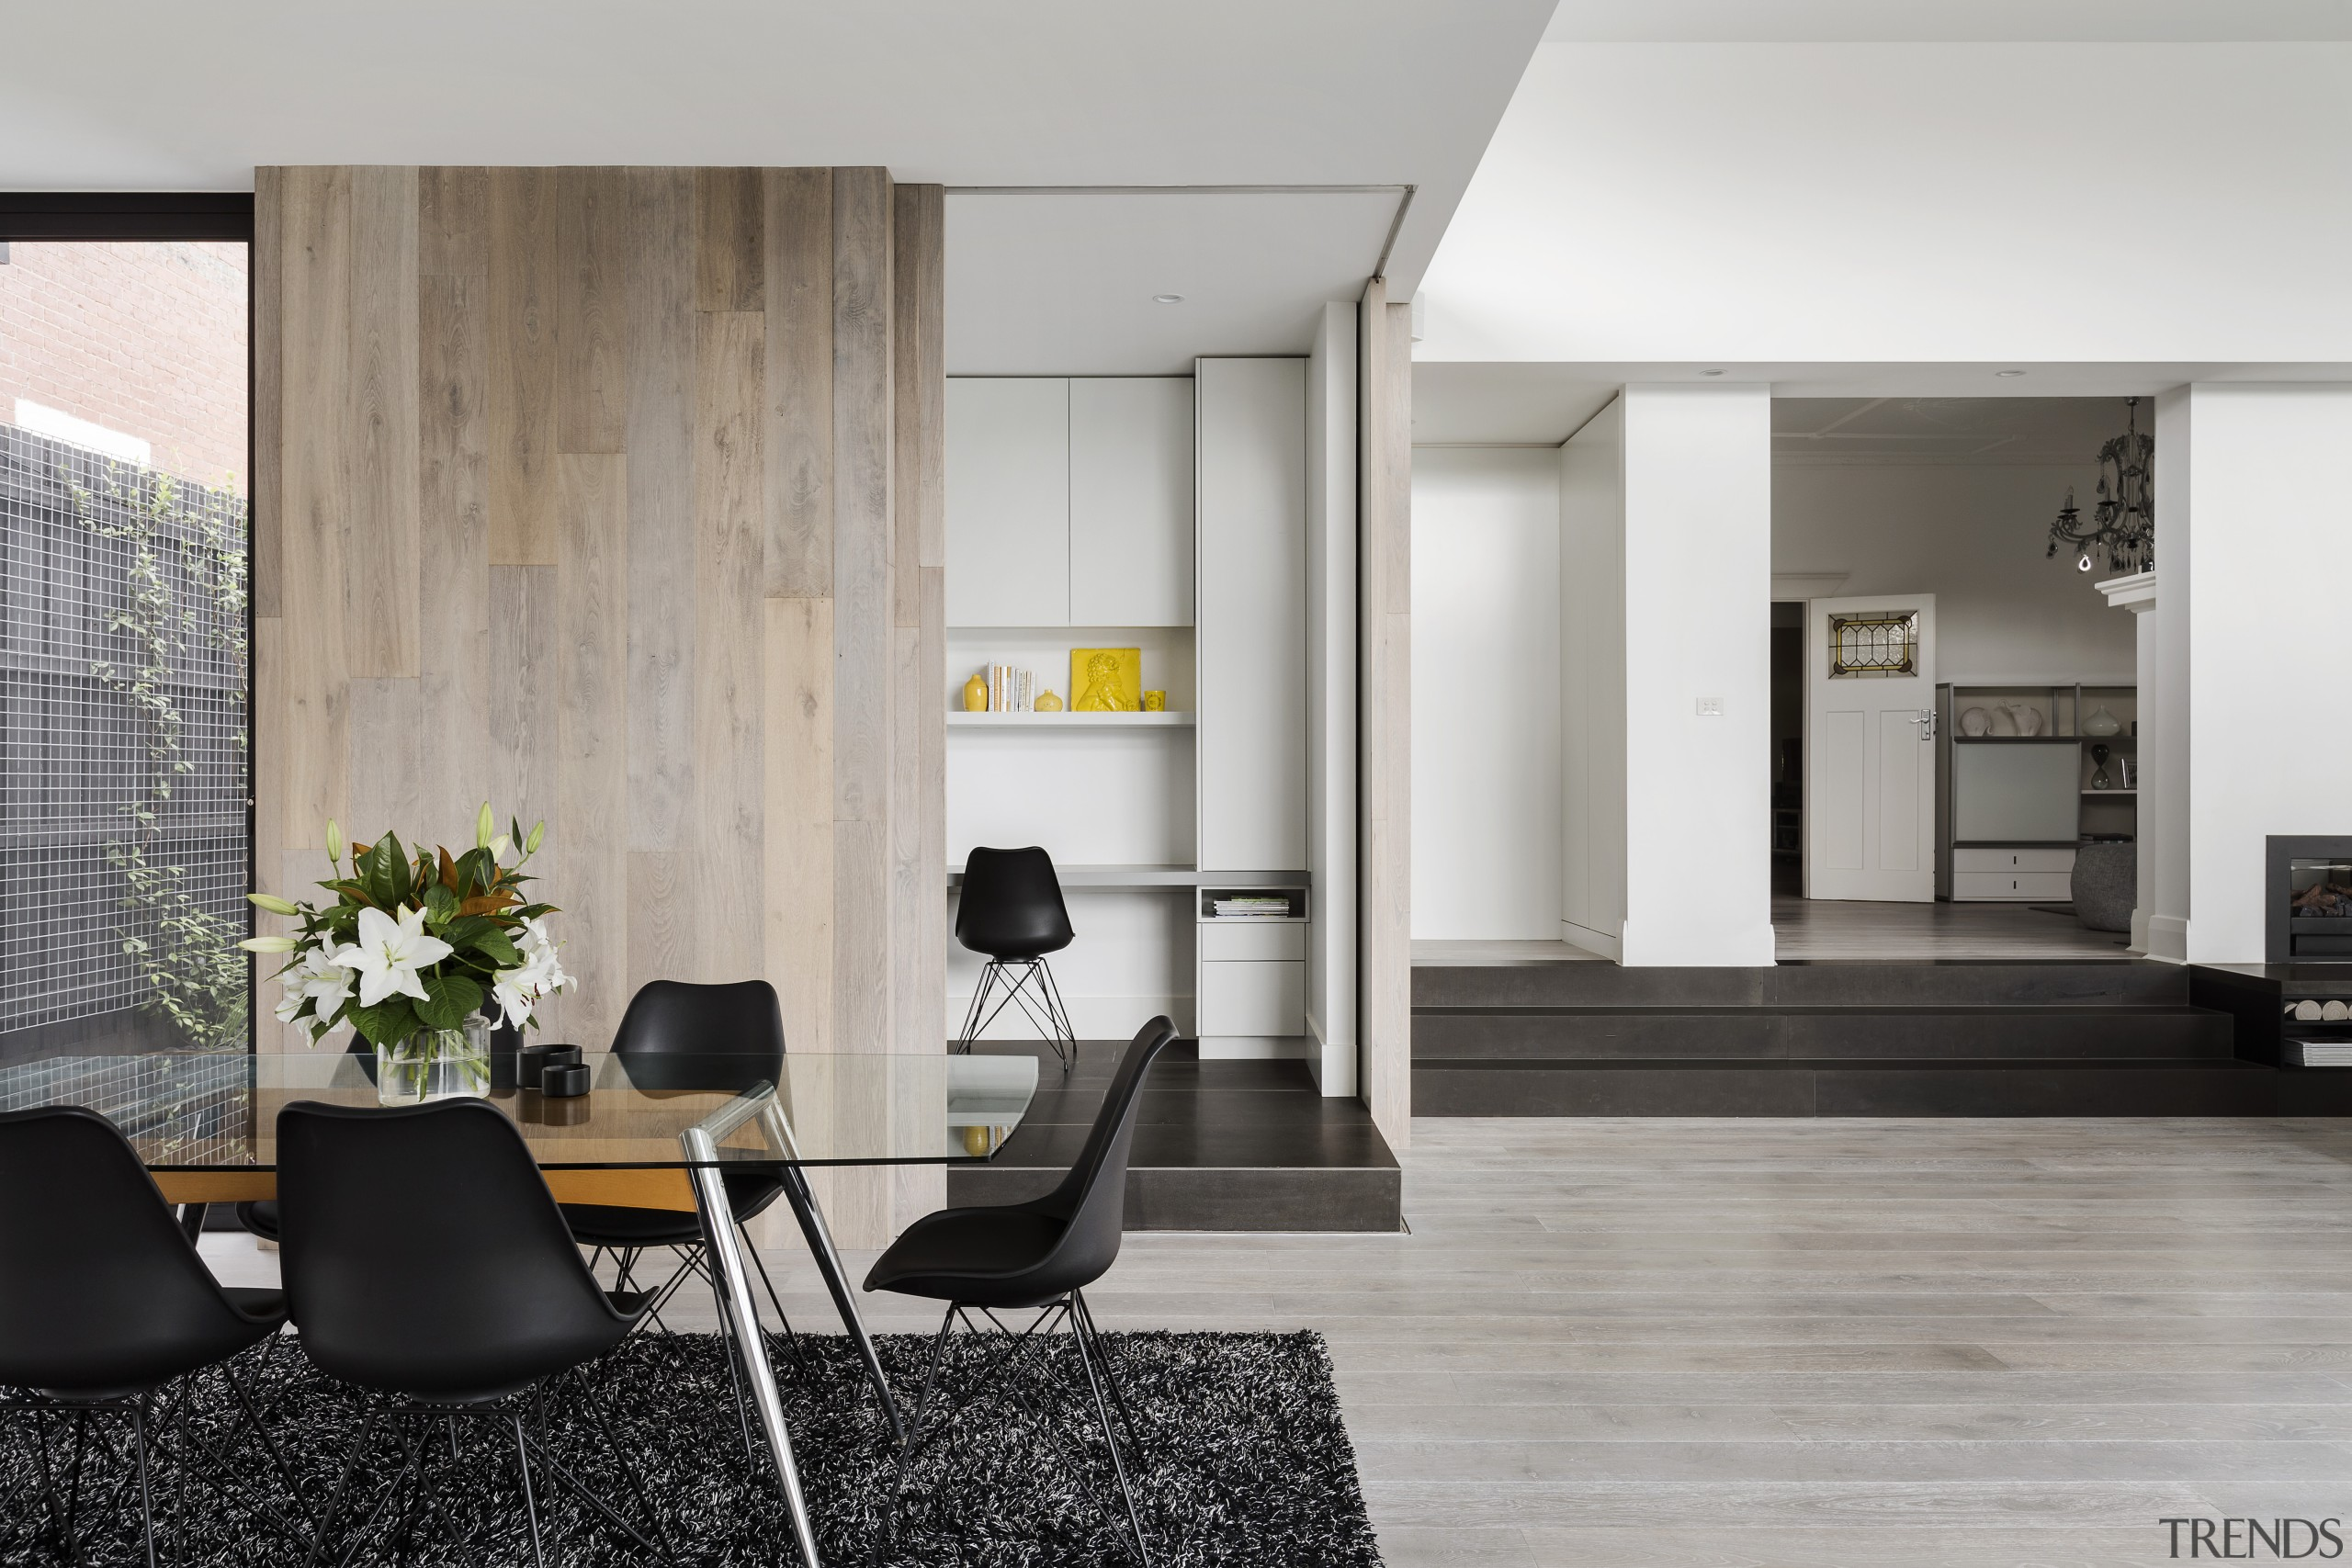 When the doors are shut on this wood-clad architecture, floor, flooring, furniture, house, interior design, living room, table, wood flooring, gray